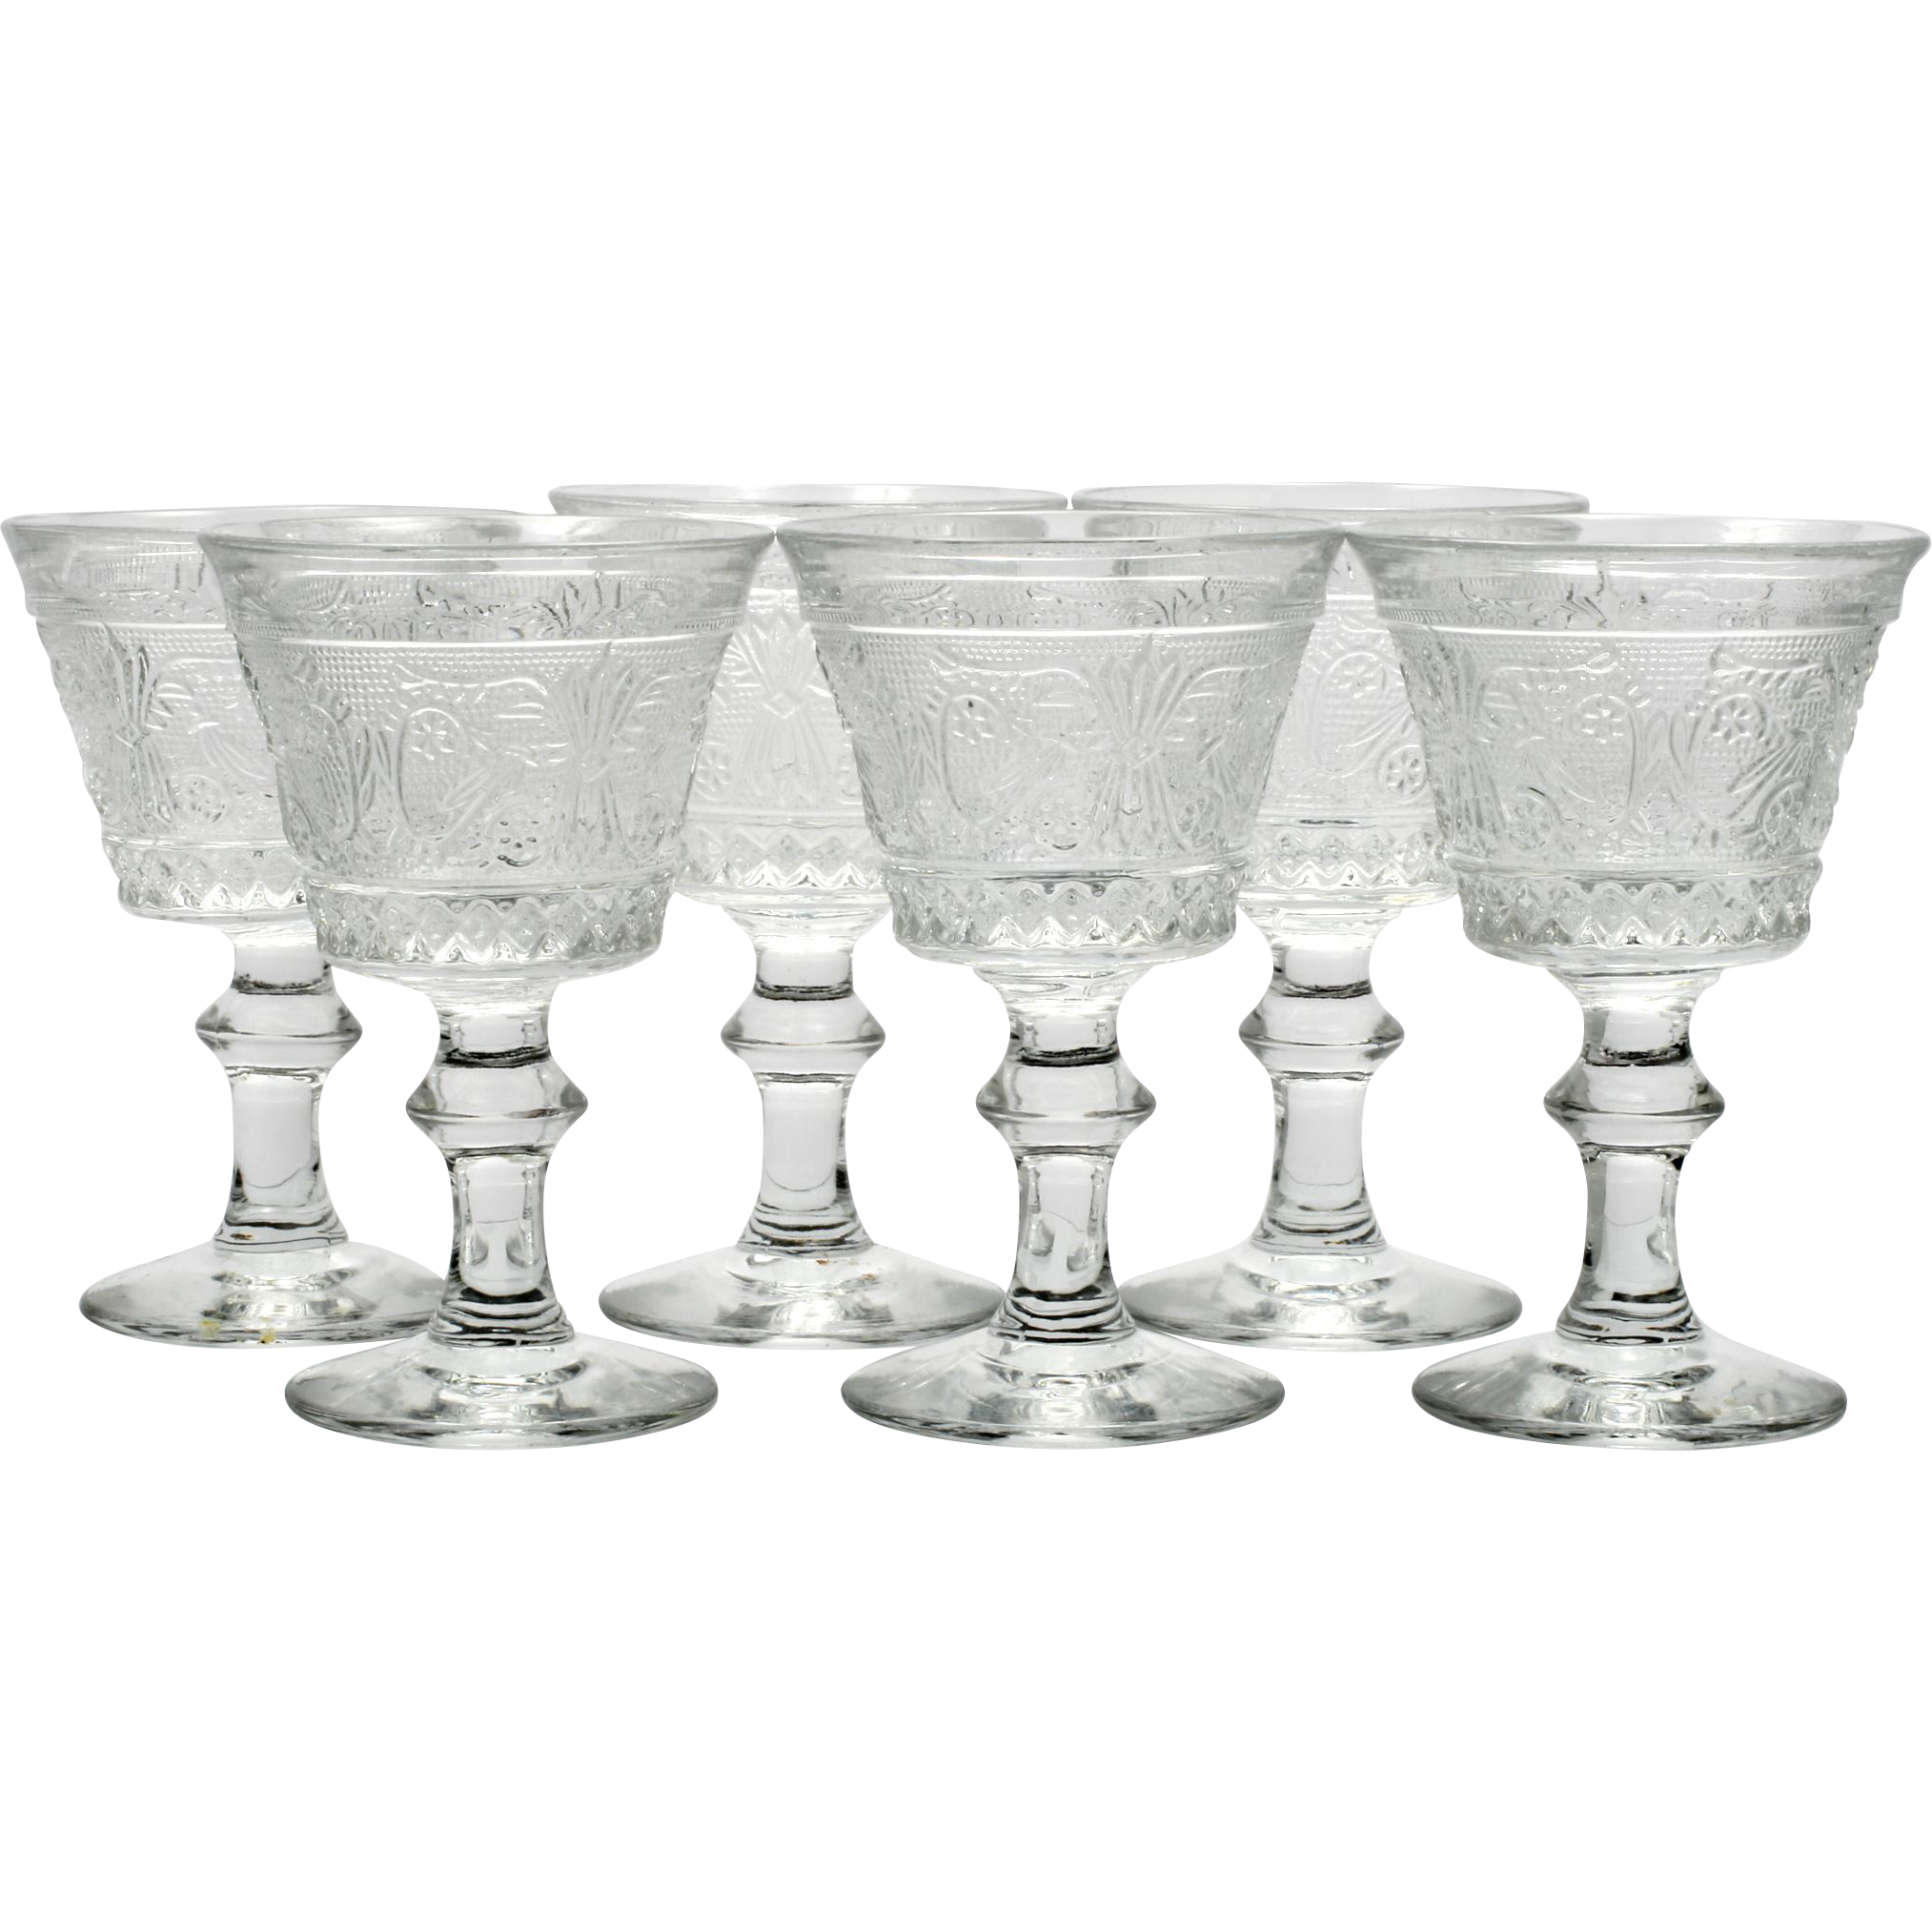 Duncan and Miller Sandwich Glass Wine Glasses set of 6 Vintage Elegant Glass